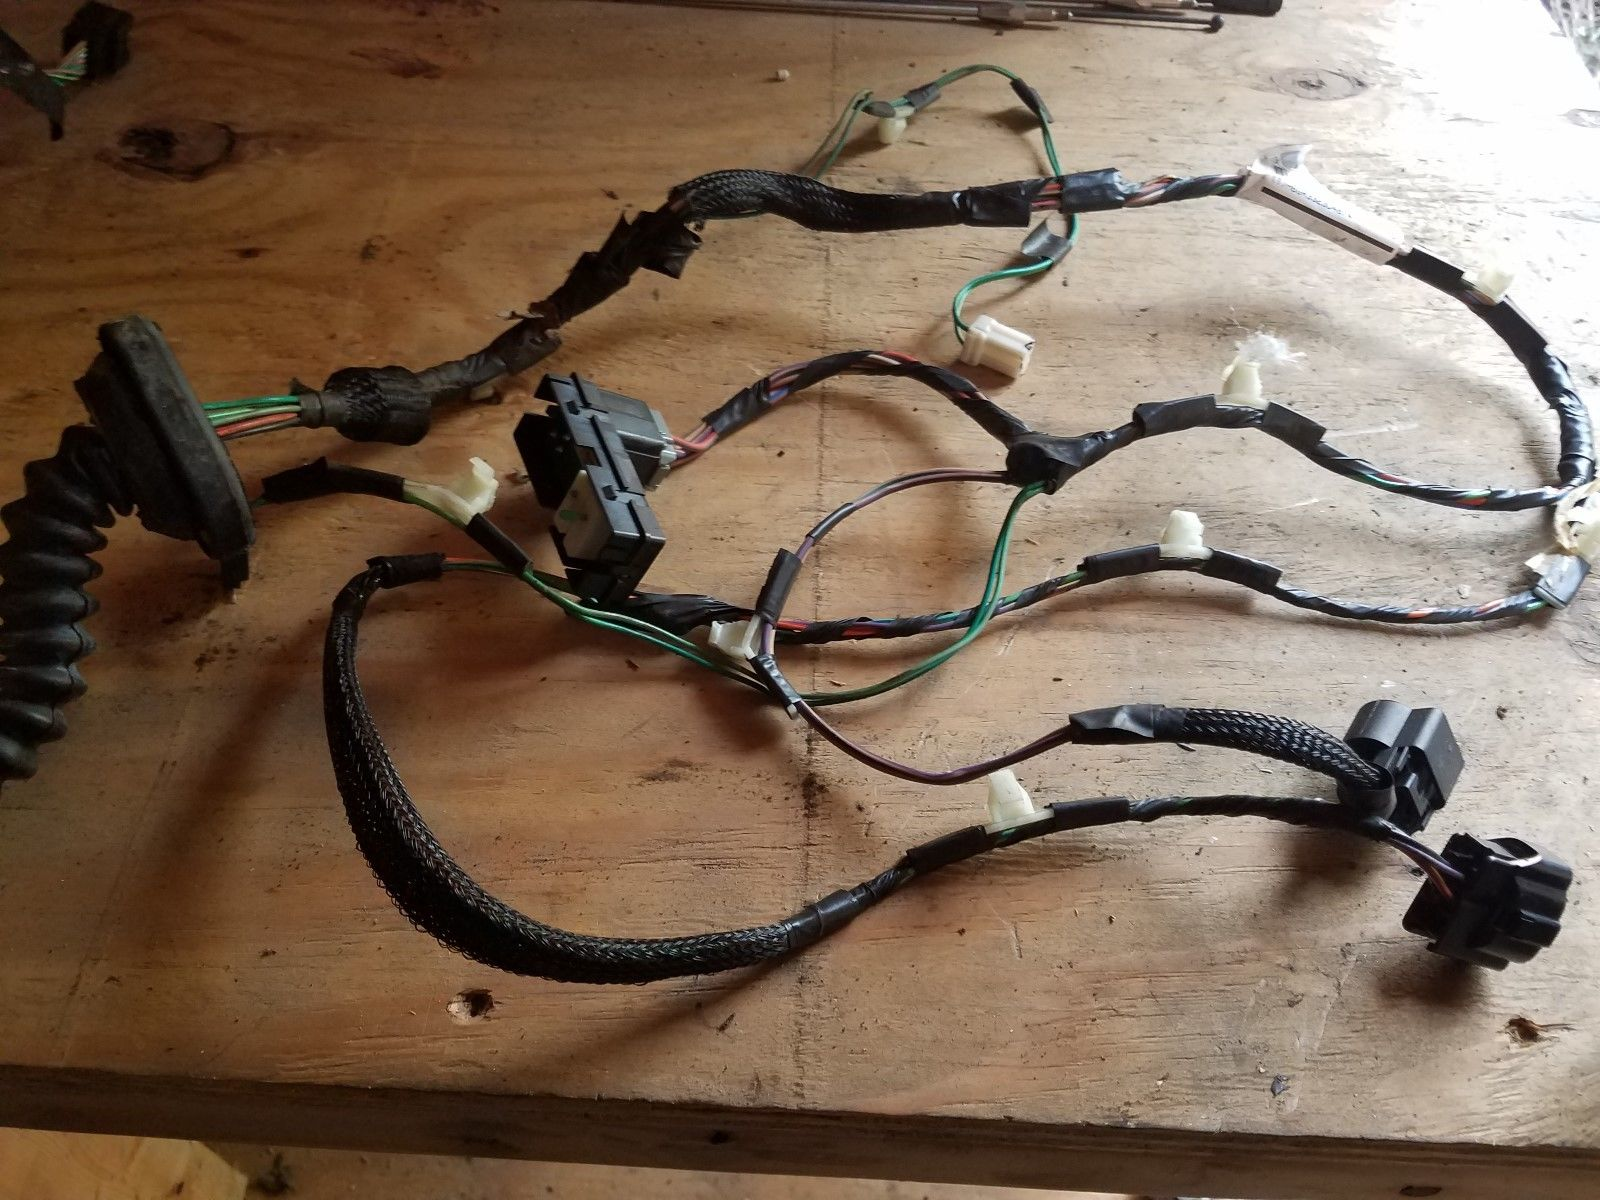 OEM 2004 Dodge Durango Front Passenger's Side Door Power Wiring Harness  Pigtail Does not apply